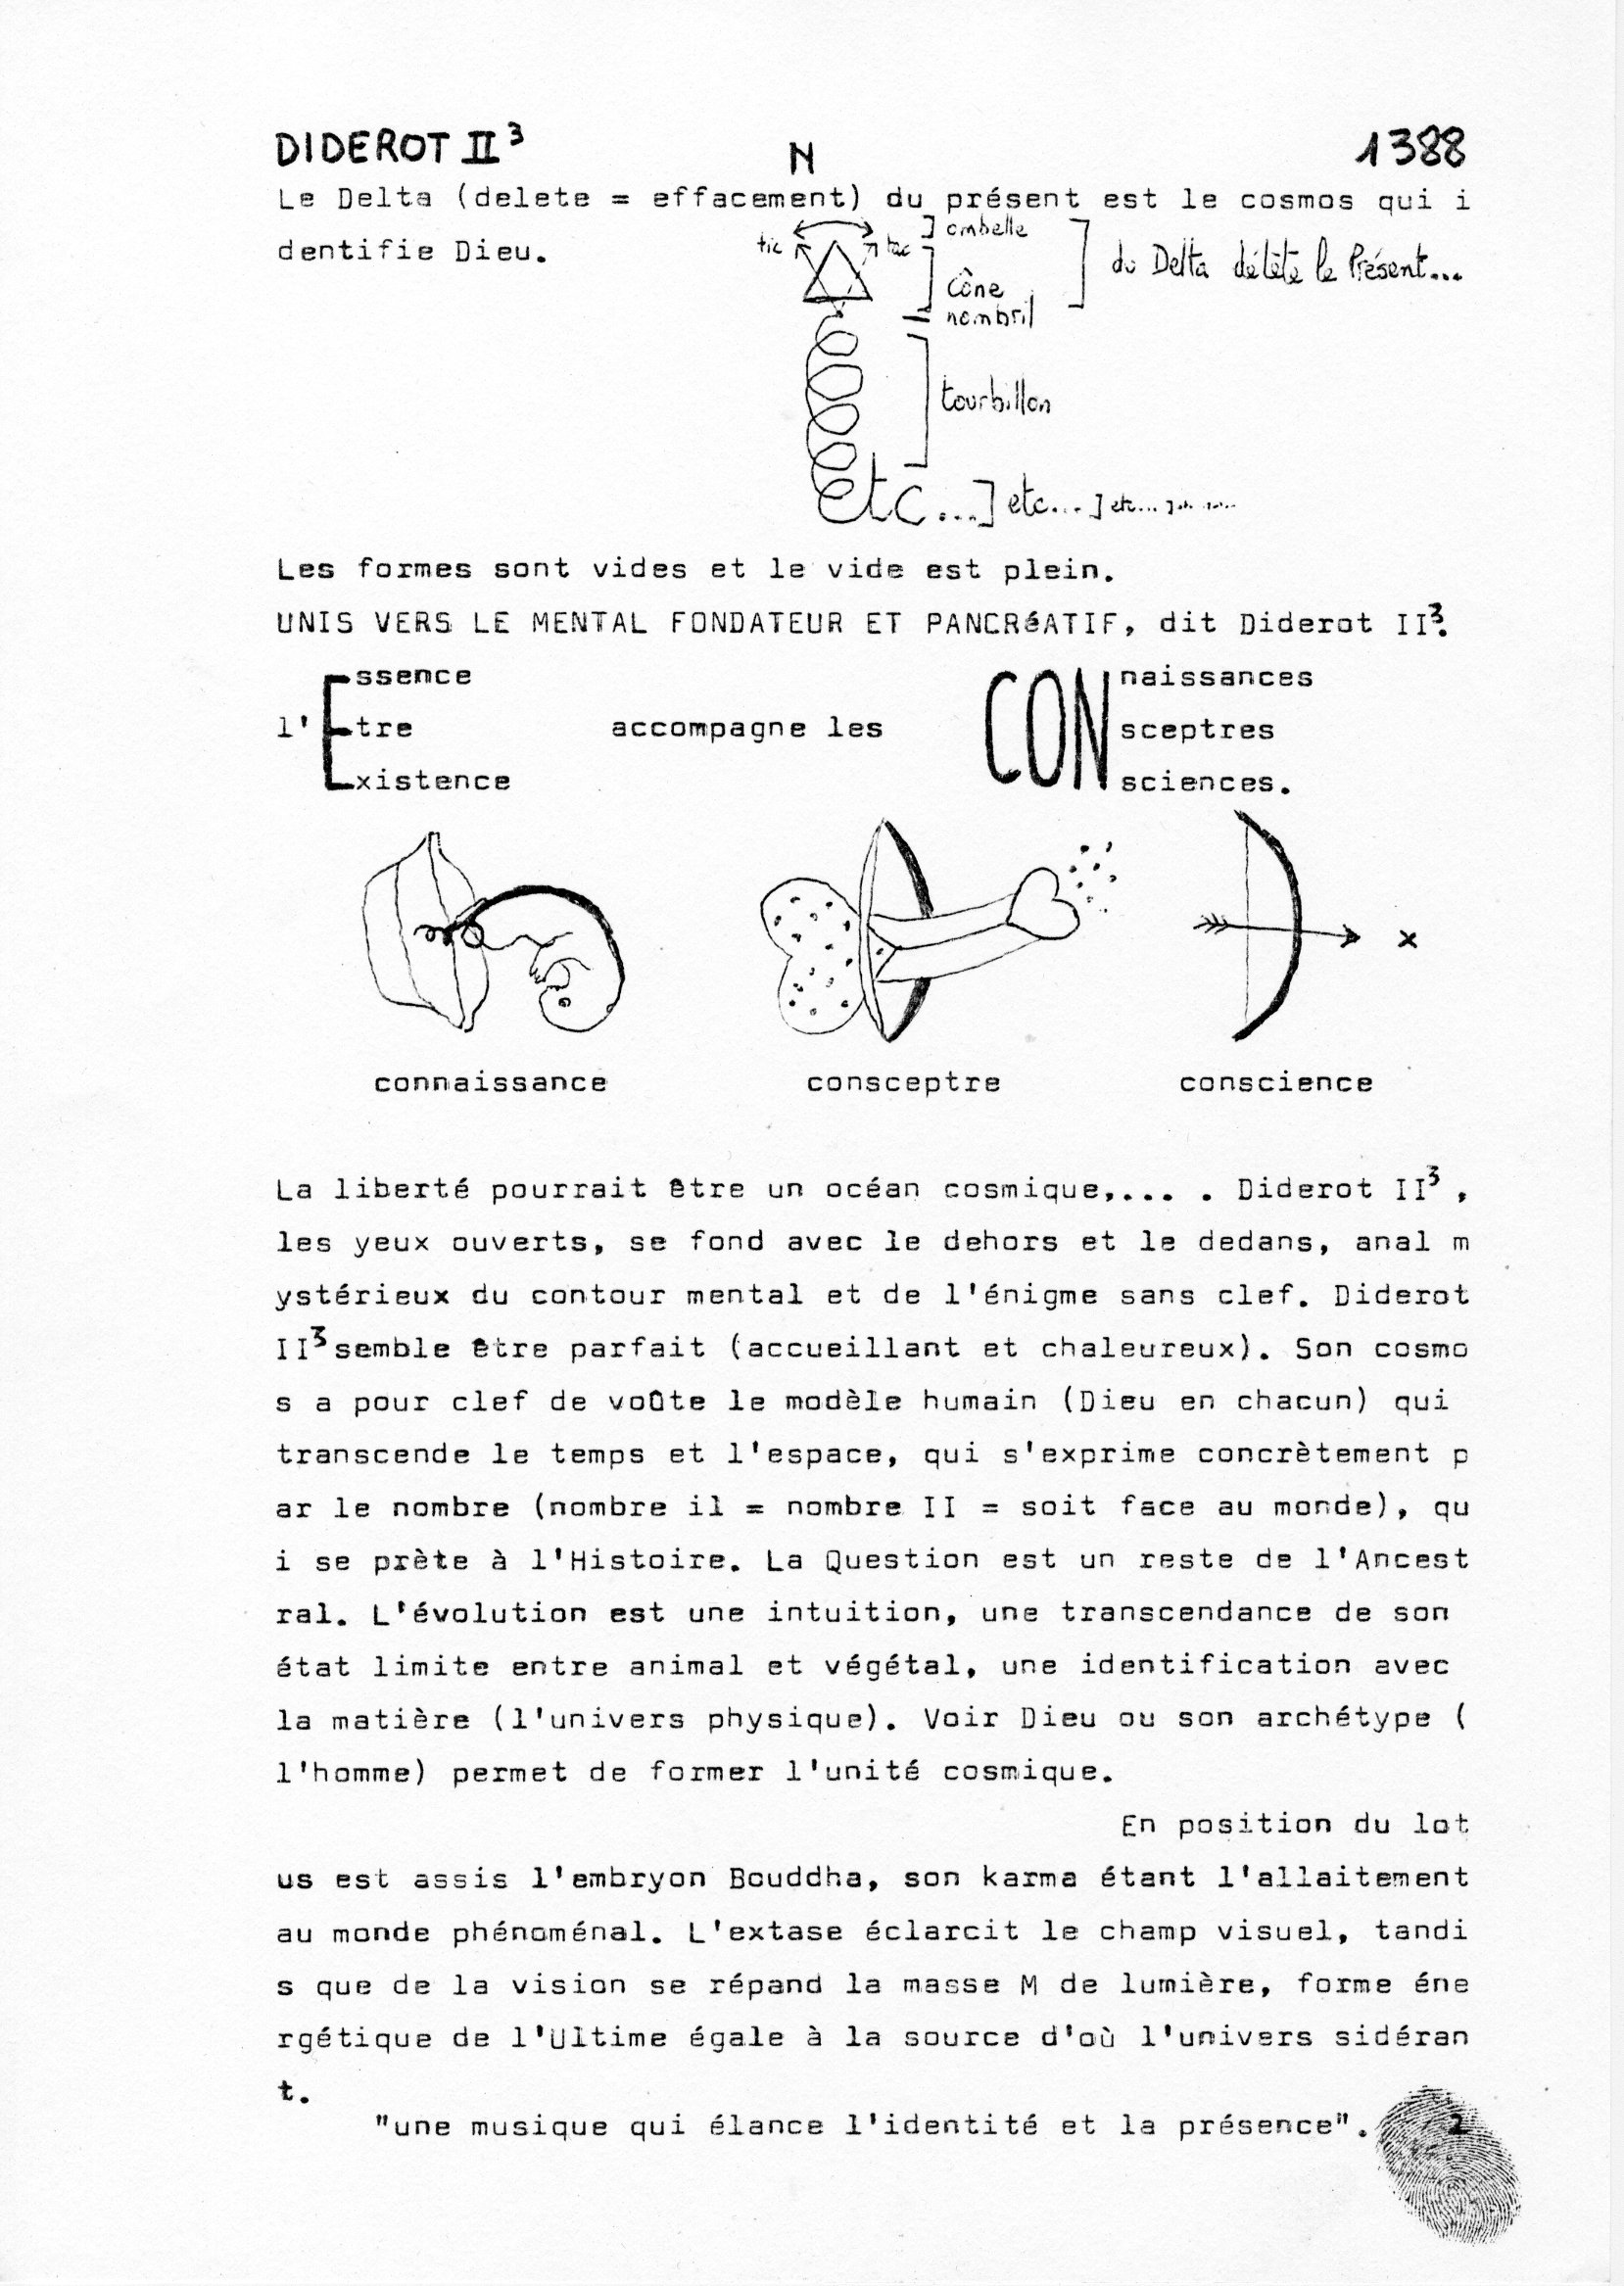 page 1388 Diderot II p3 N